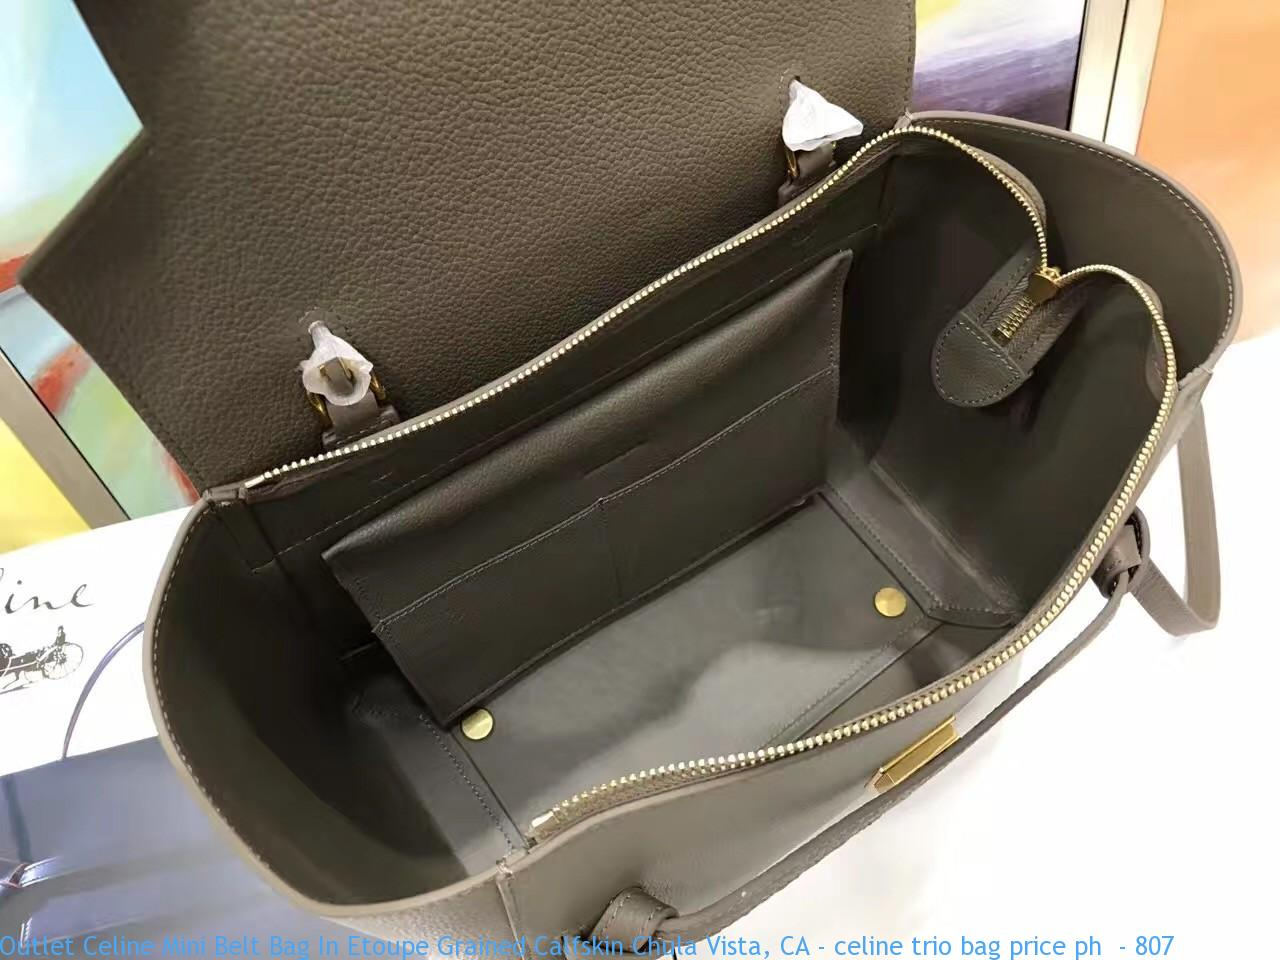 Outlet Celine Mini Belt Bag In Etoupe Grained Calfskin Chula Vista Ca Celine Trio Bag Price Ph 807 Celine Bag Replica Buy Fake Celine Bags Online Queenreplicaceline